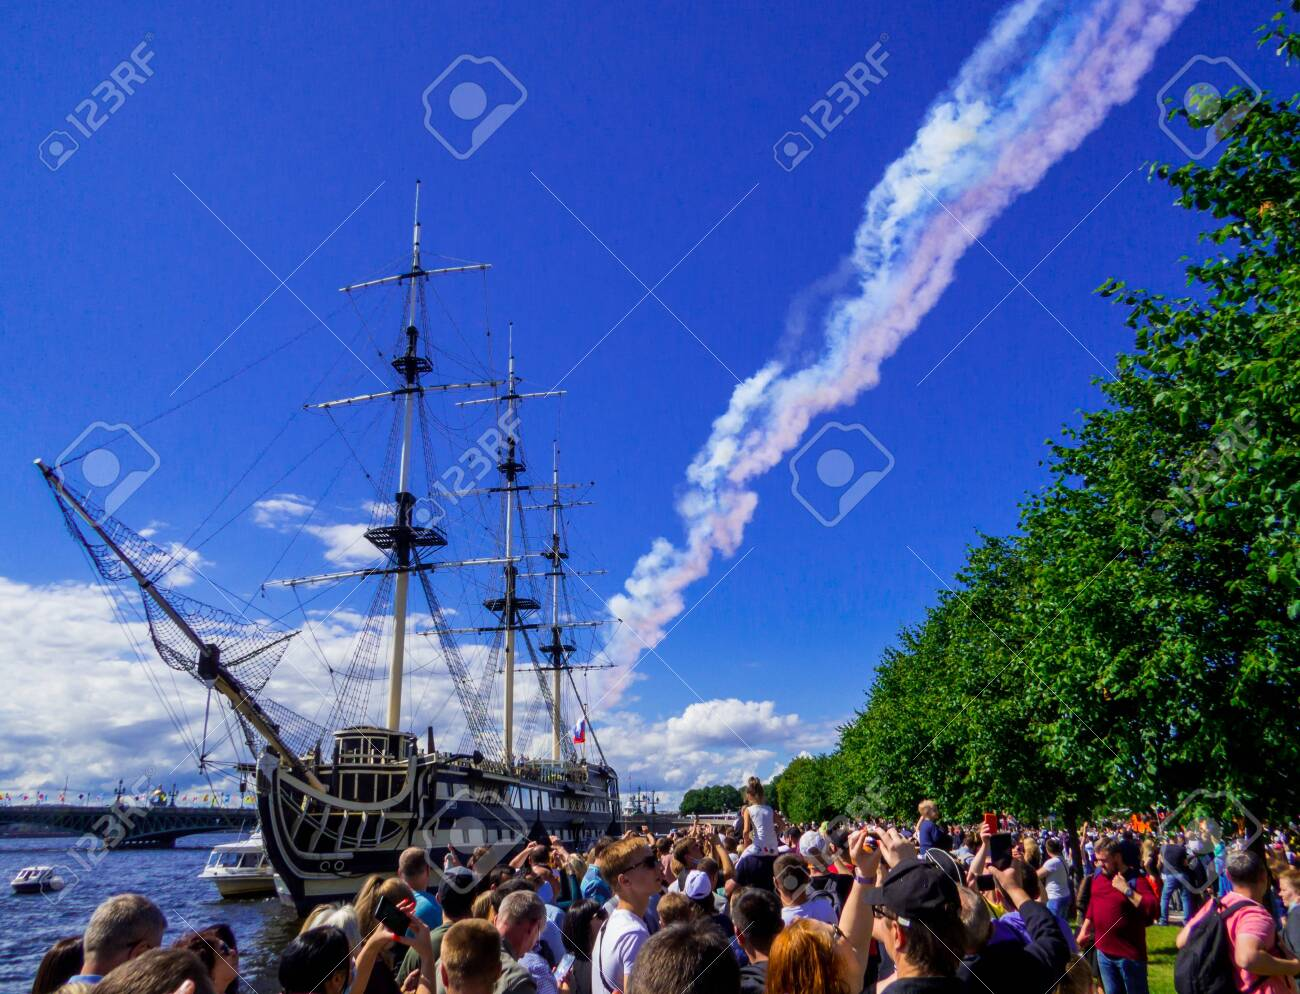 St. Petersburg, Russia - July 26, 2020: People watching the annual celebrations for the Navy Day on the embankment of the Neva River. - 152365069